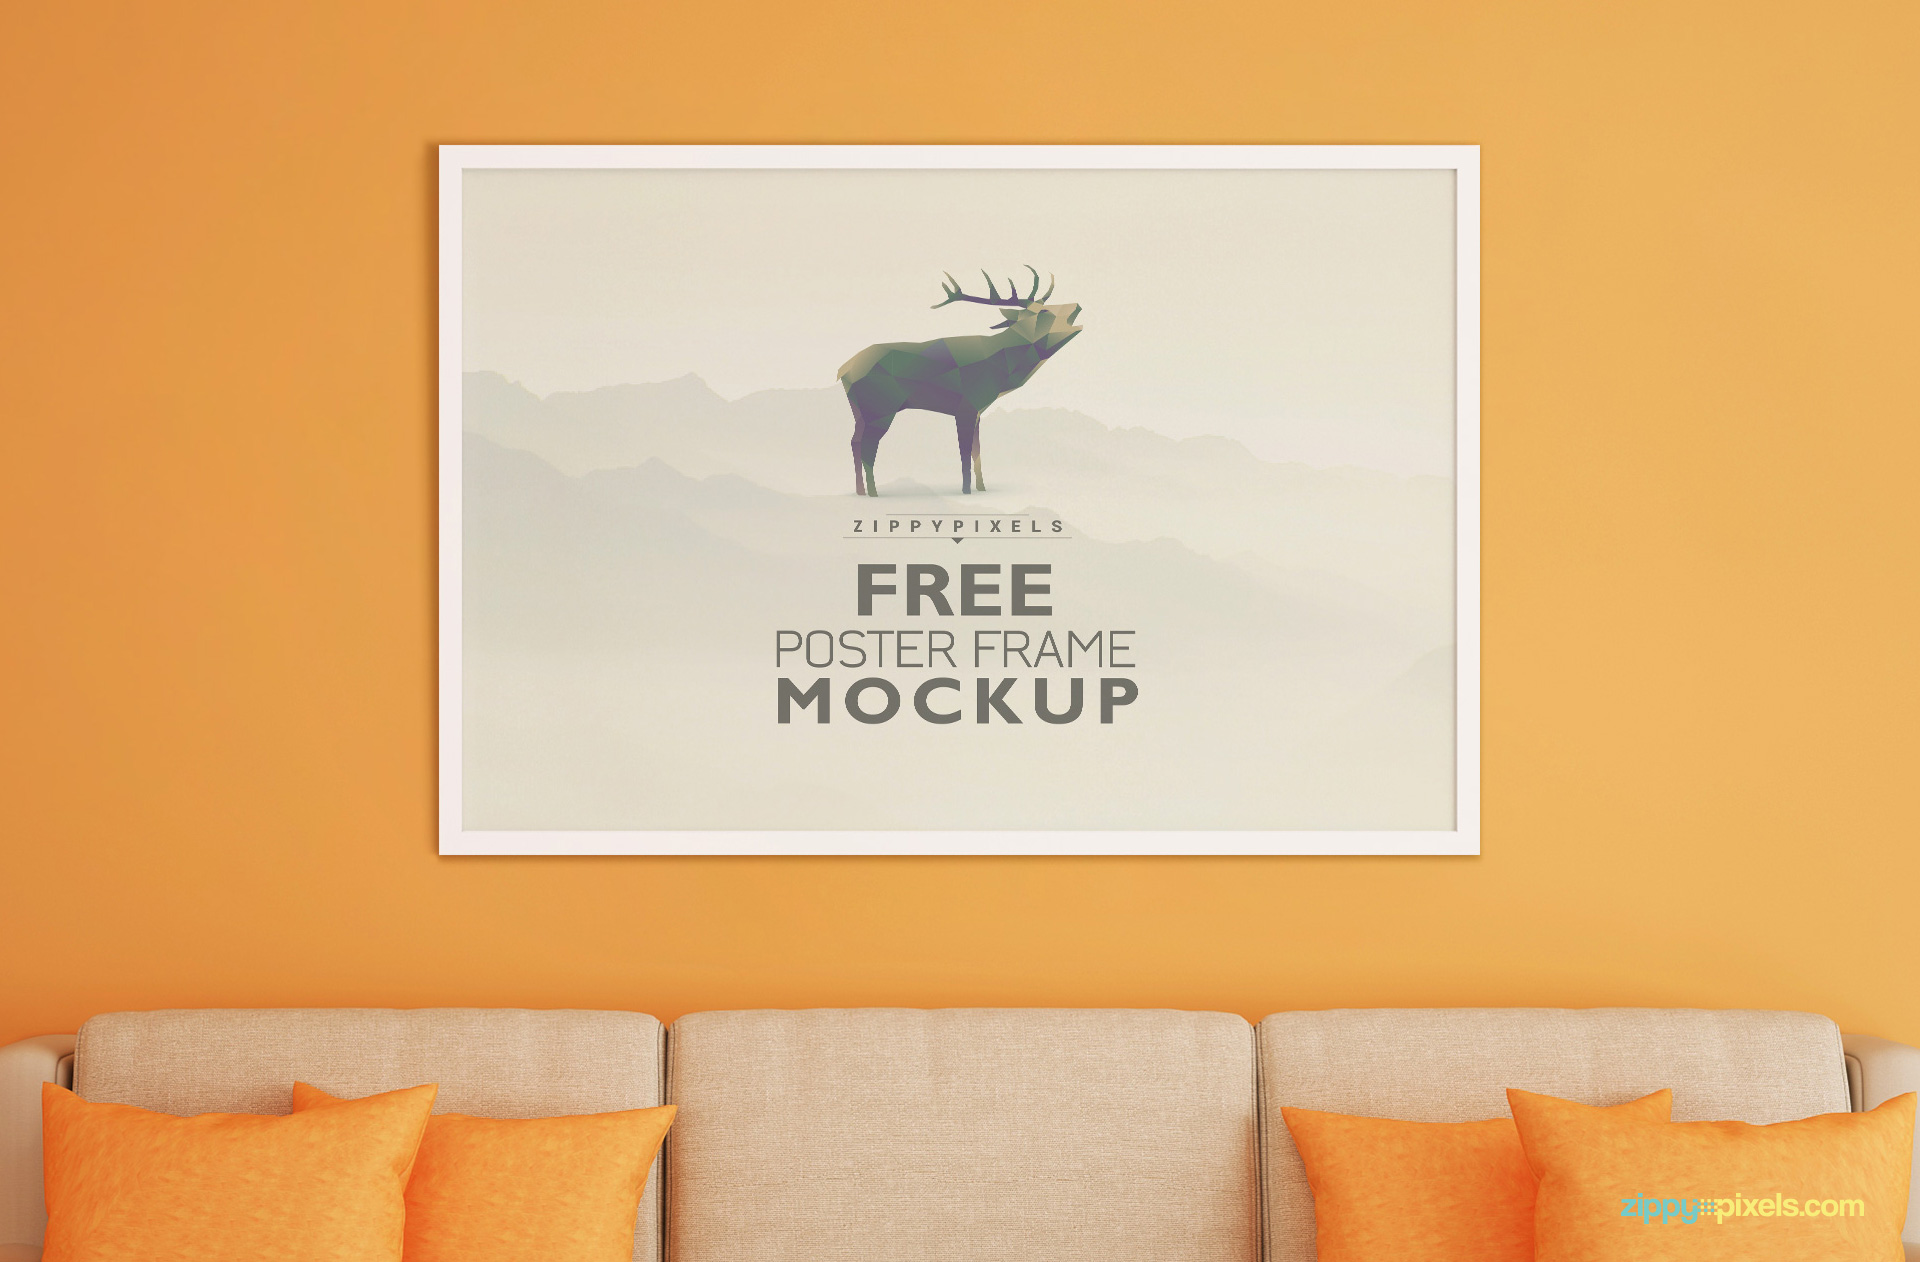 Free Frame Mockup for Poster, Photo & Artwork